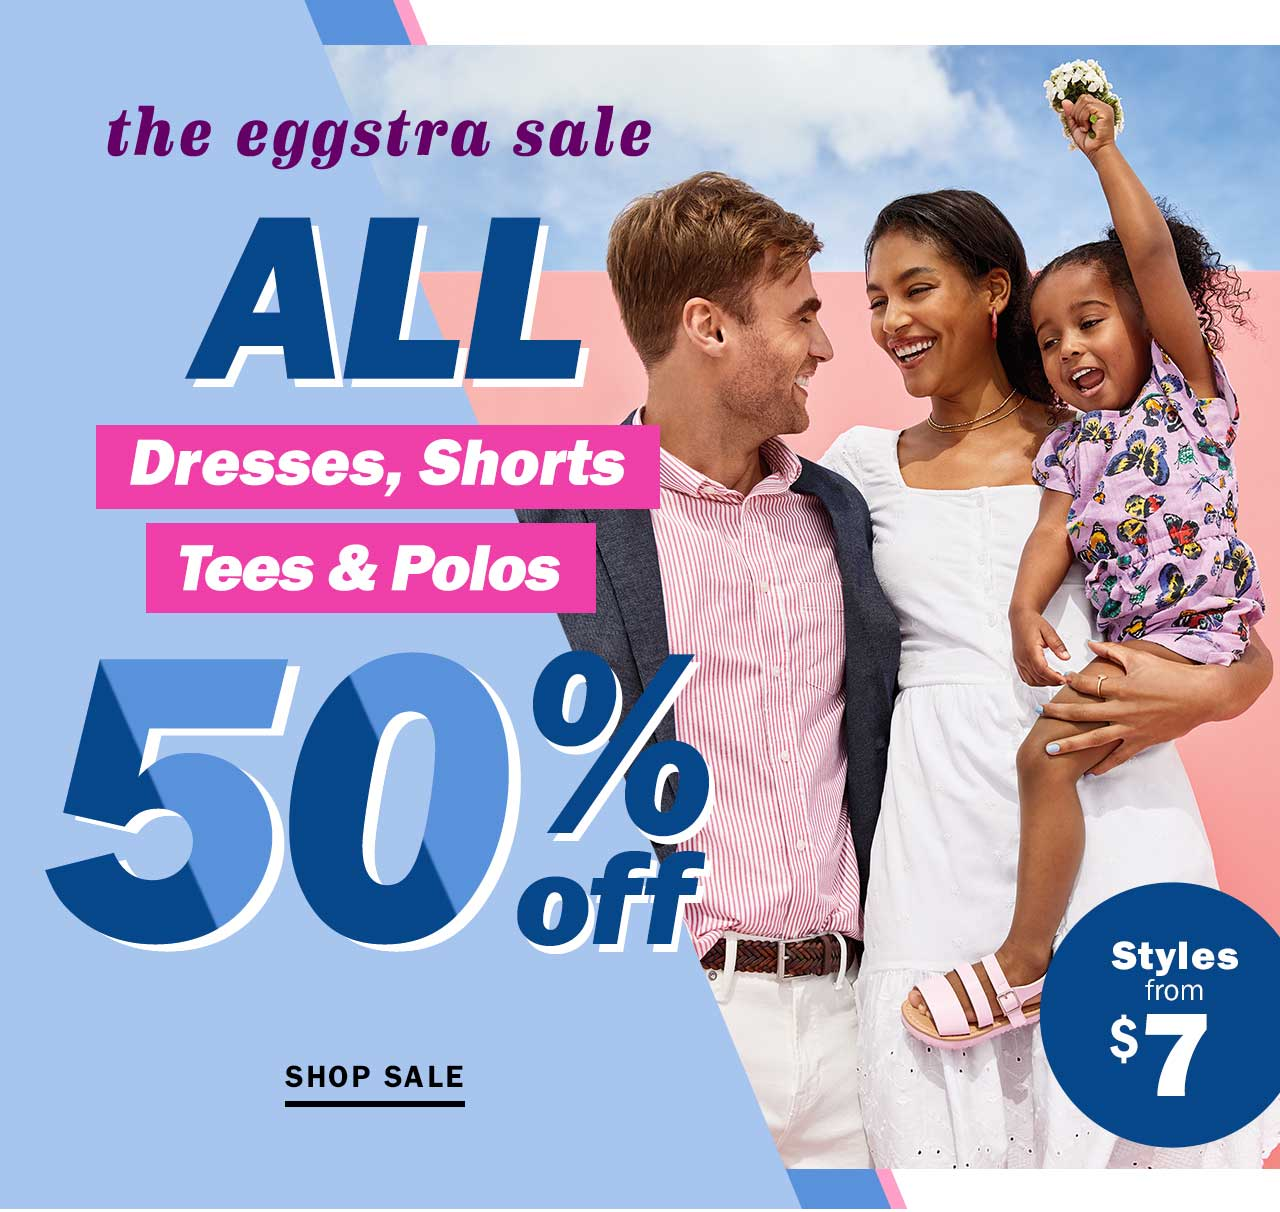 The eggstra sale